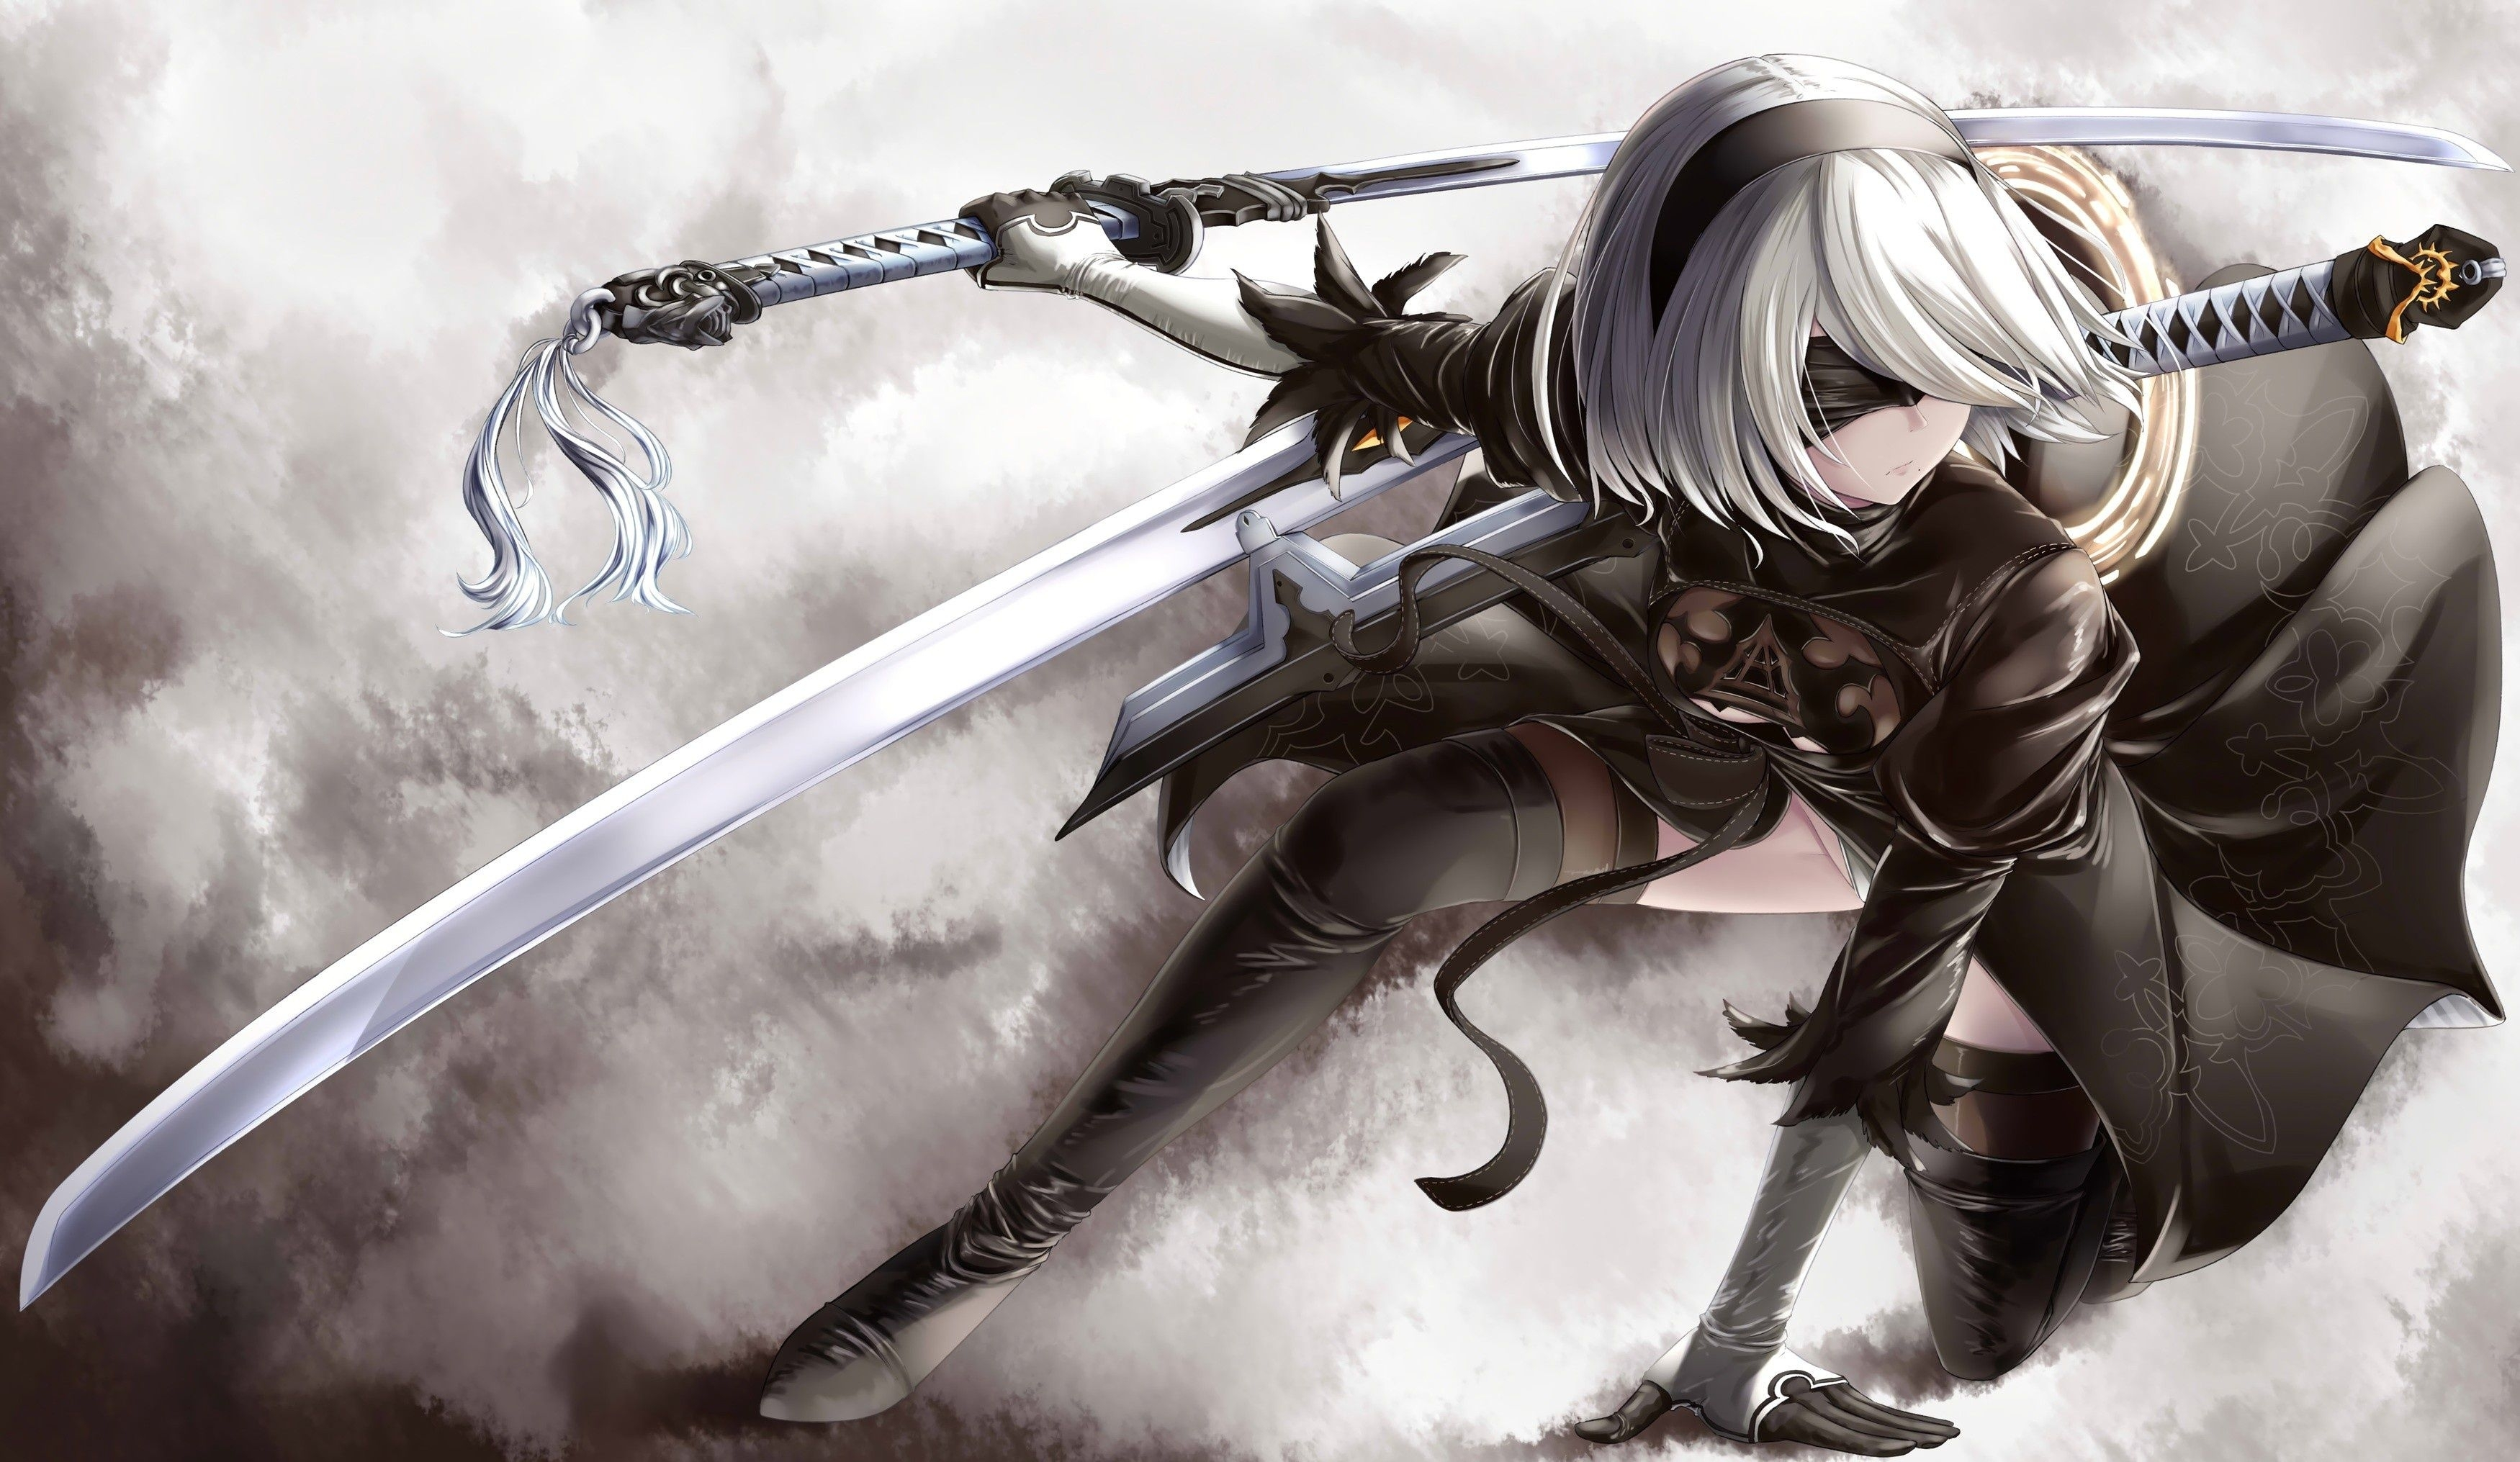 10 Top Nier Automata Wallpaper 2B FULL HD 1080p For PC Desktop